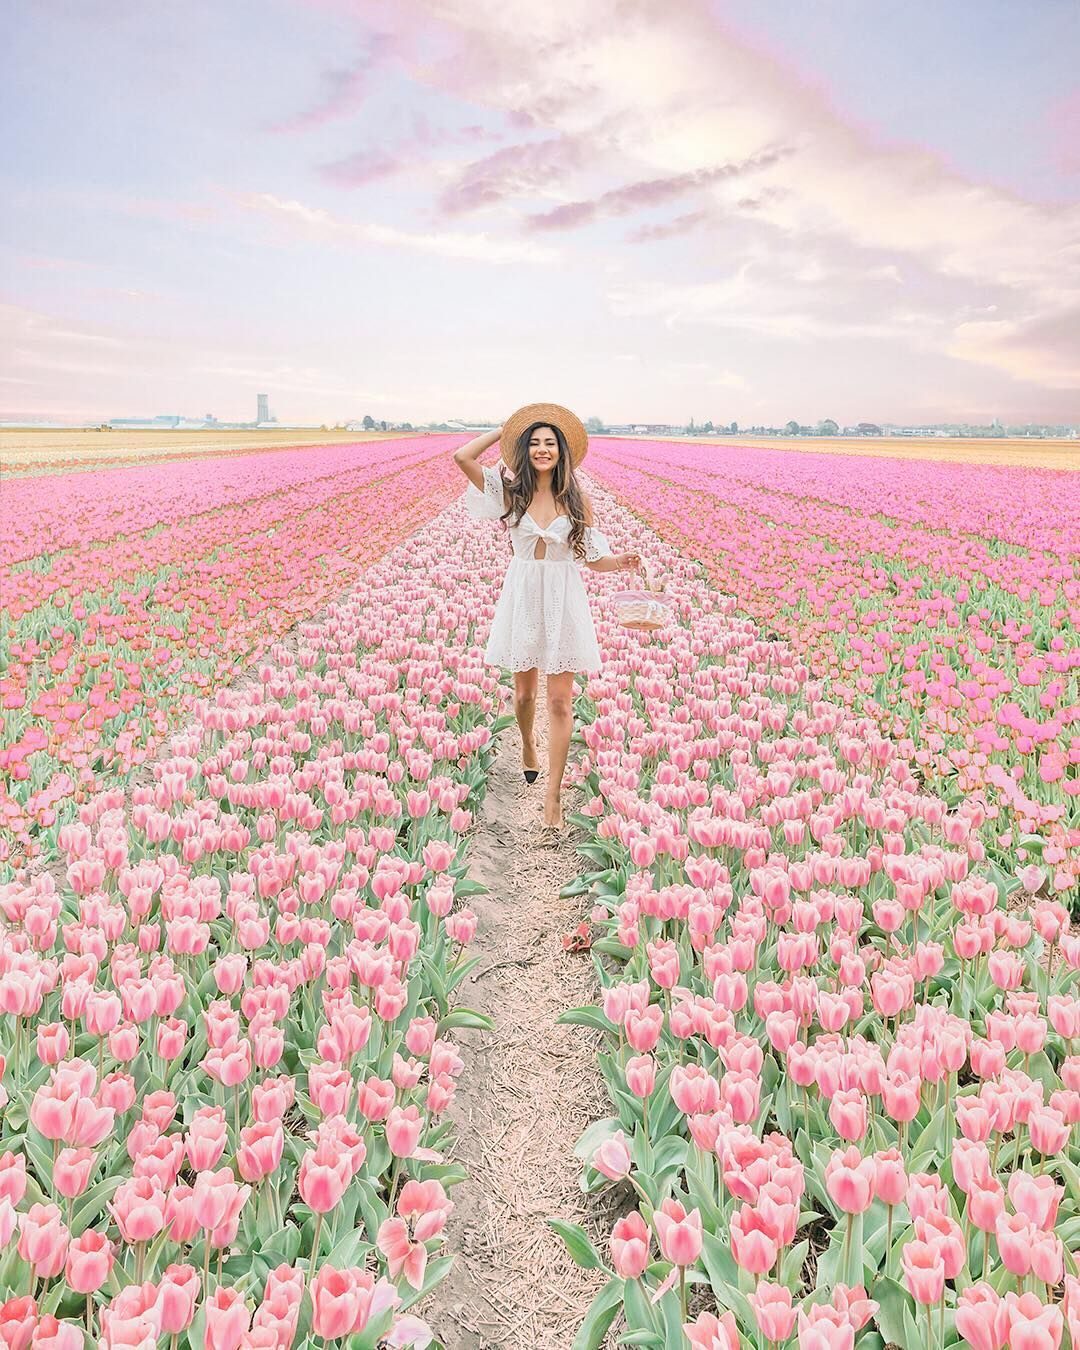 Cassiesamji One Of The Most Mesmerising Experiences In My Entire Life This Has Been A Dream Of Mine For A Few Years Now T Tulip Fields Tulips Flower Field